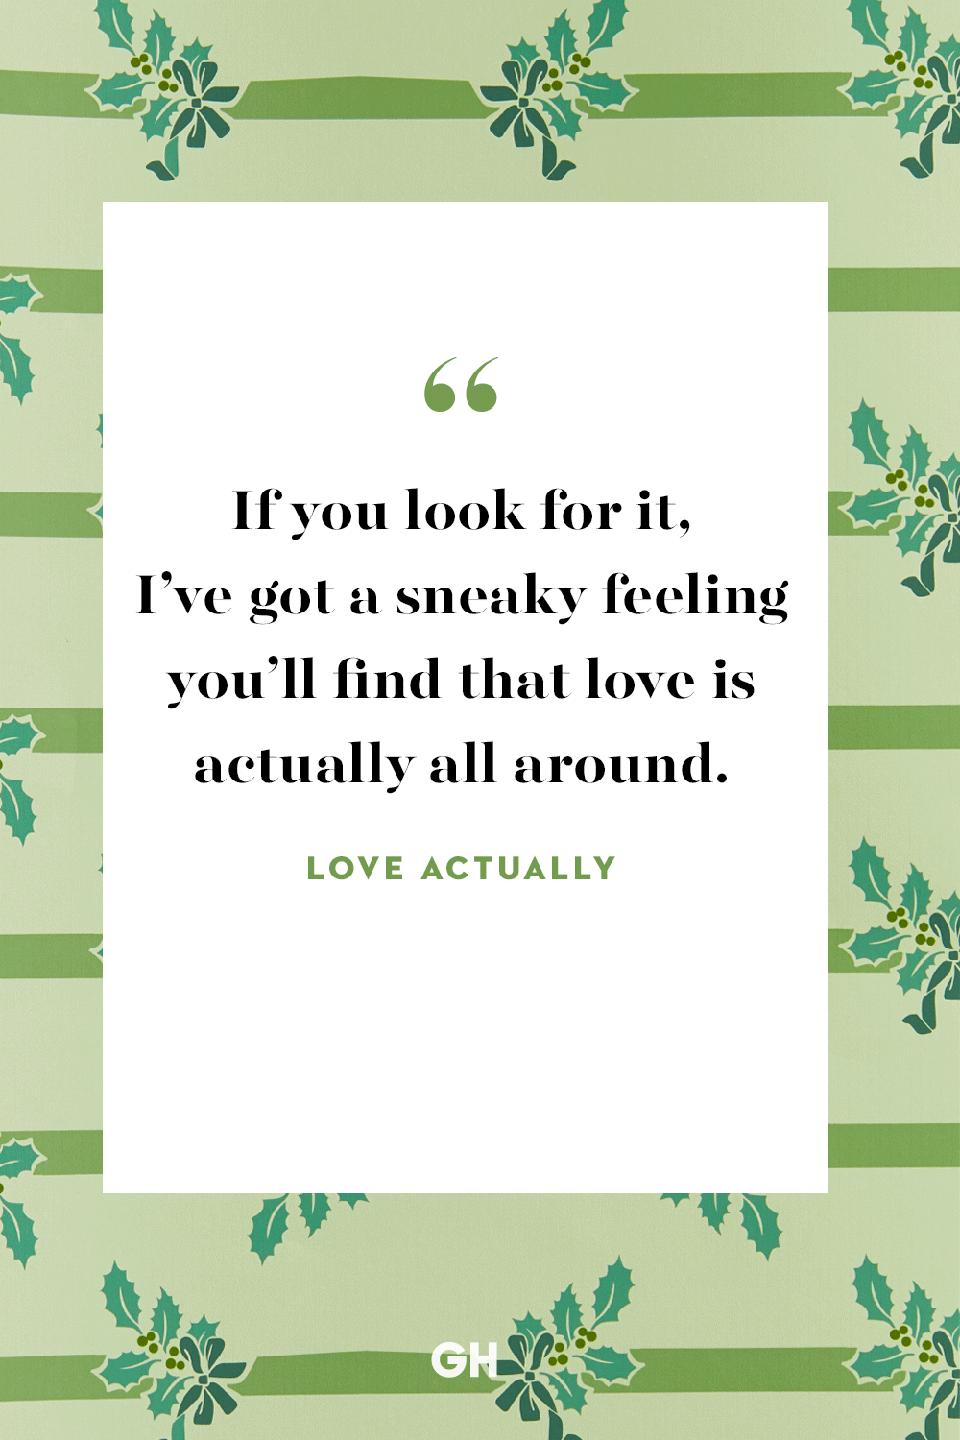 <p>If you look for it, I've got a sneaky feeling you'll find that love is actually all around.</p>